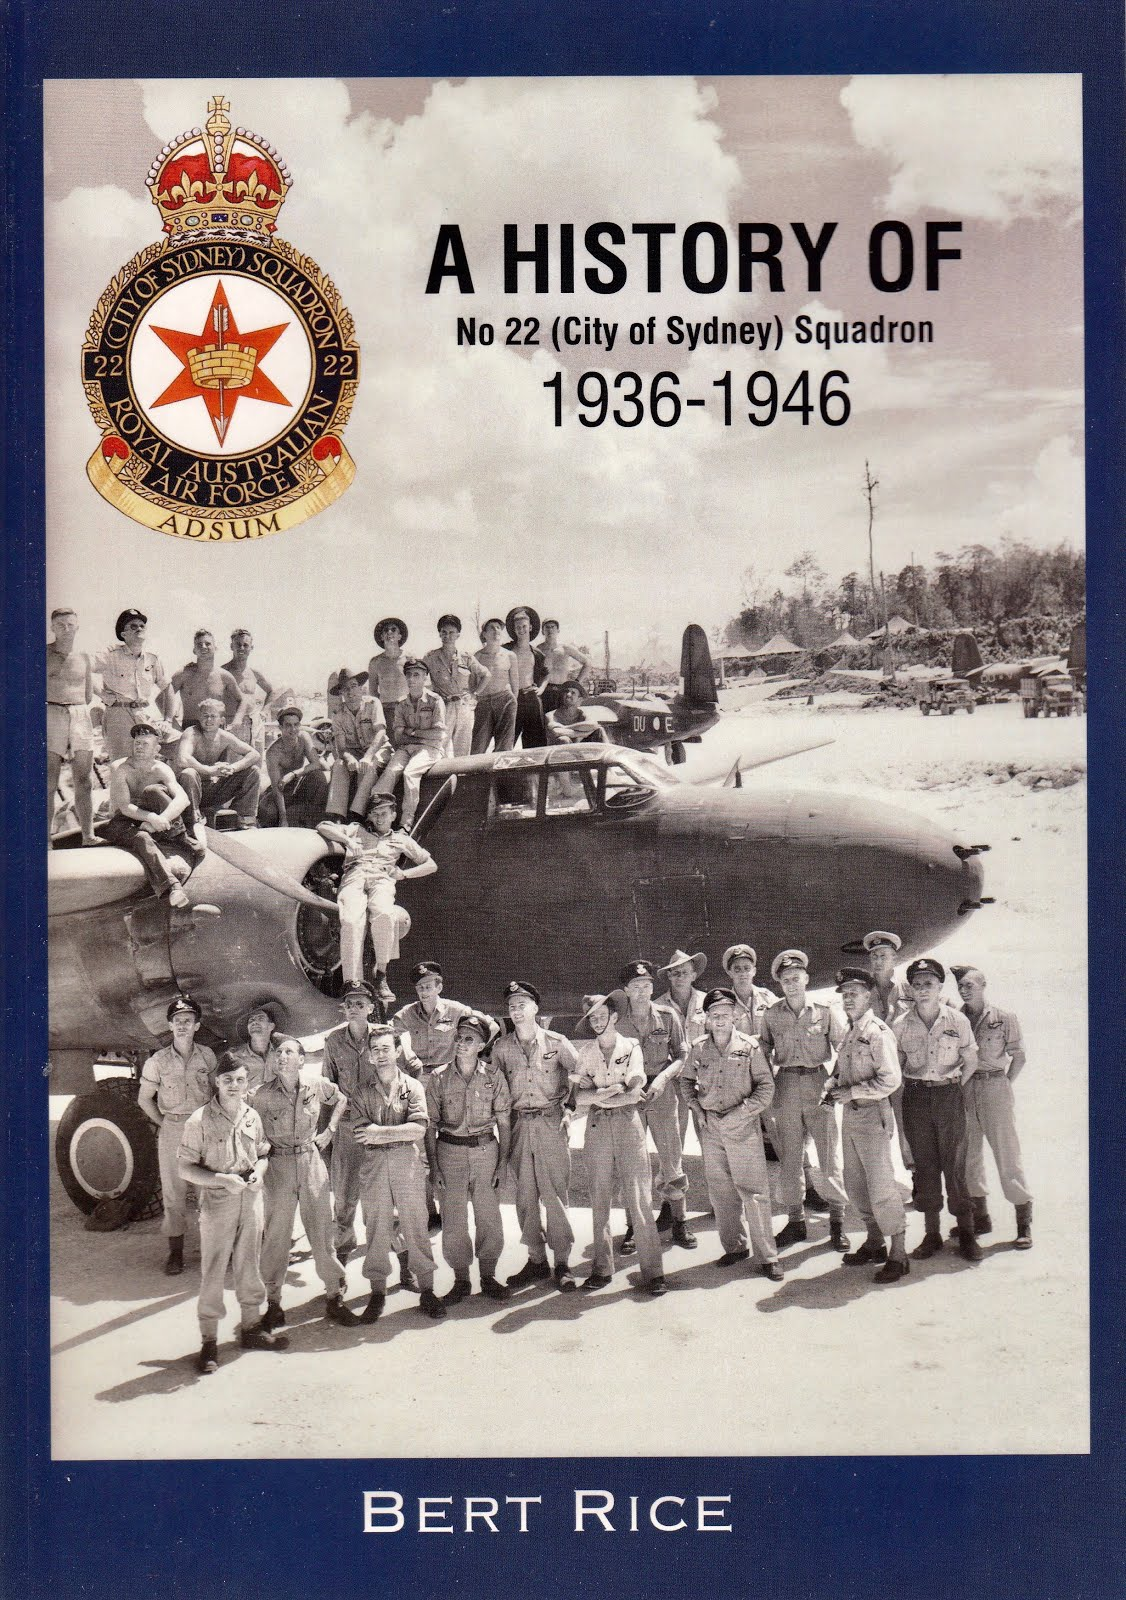 A History of 22 Squadron